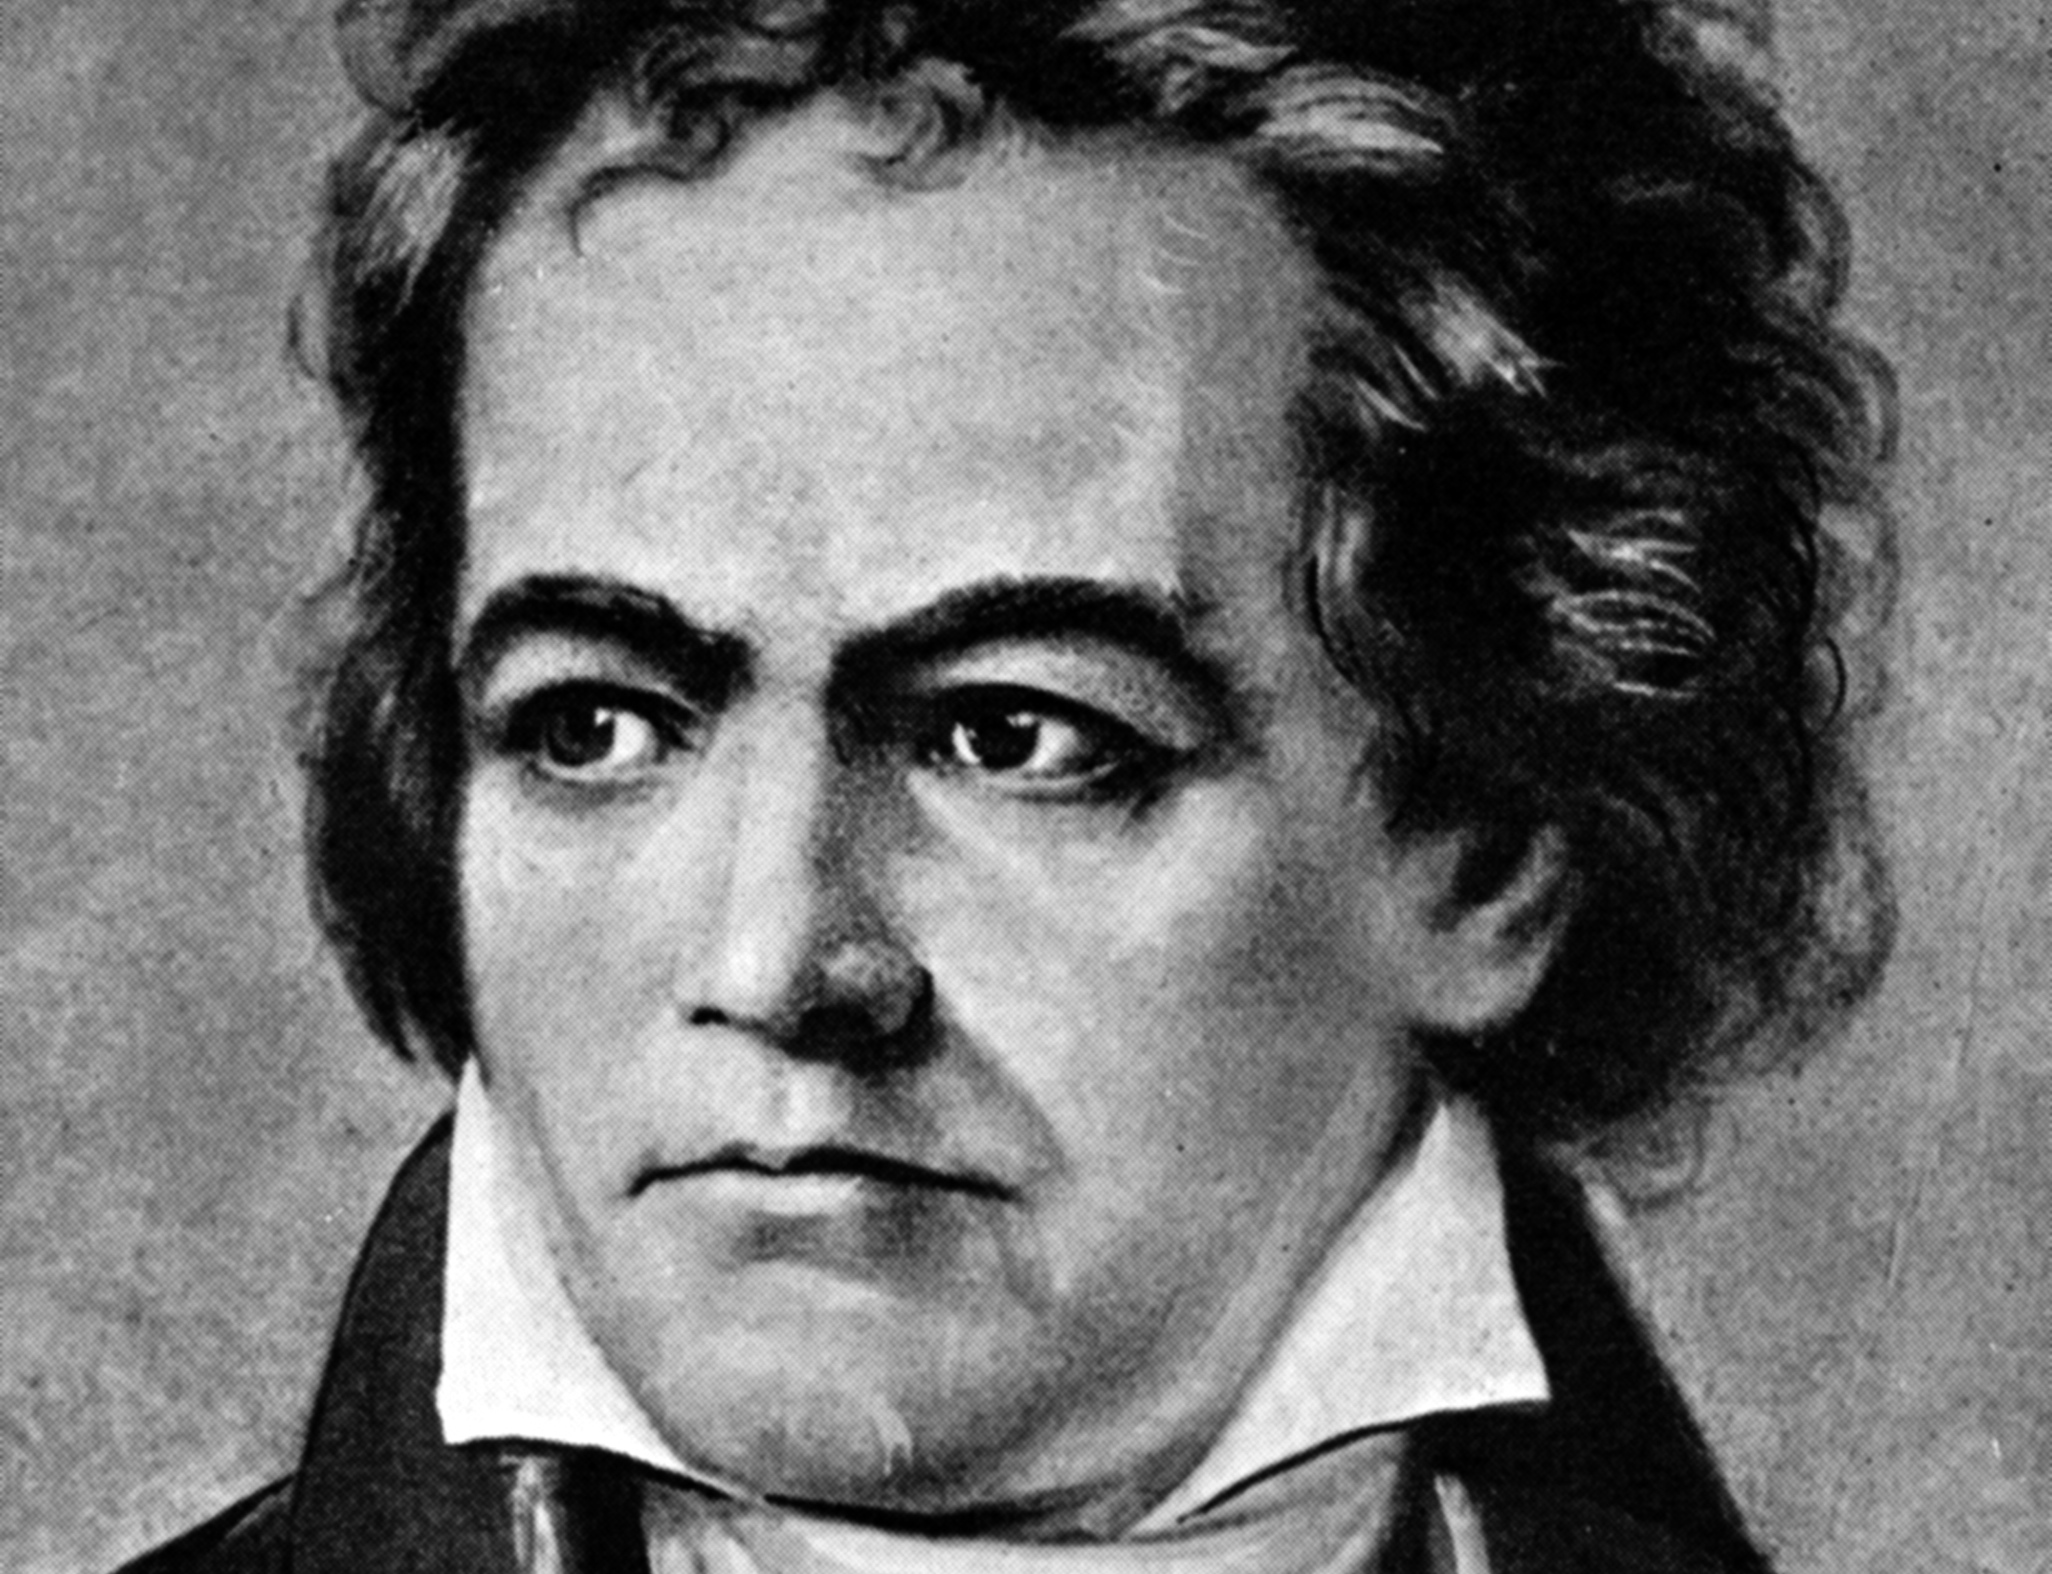 a biography of ludwig van beethoven a composer Find ludwig van beethoven biography and history on allmusic - the events of beethoven's life are the stuff of.